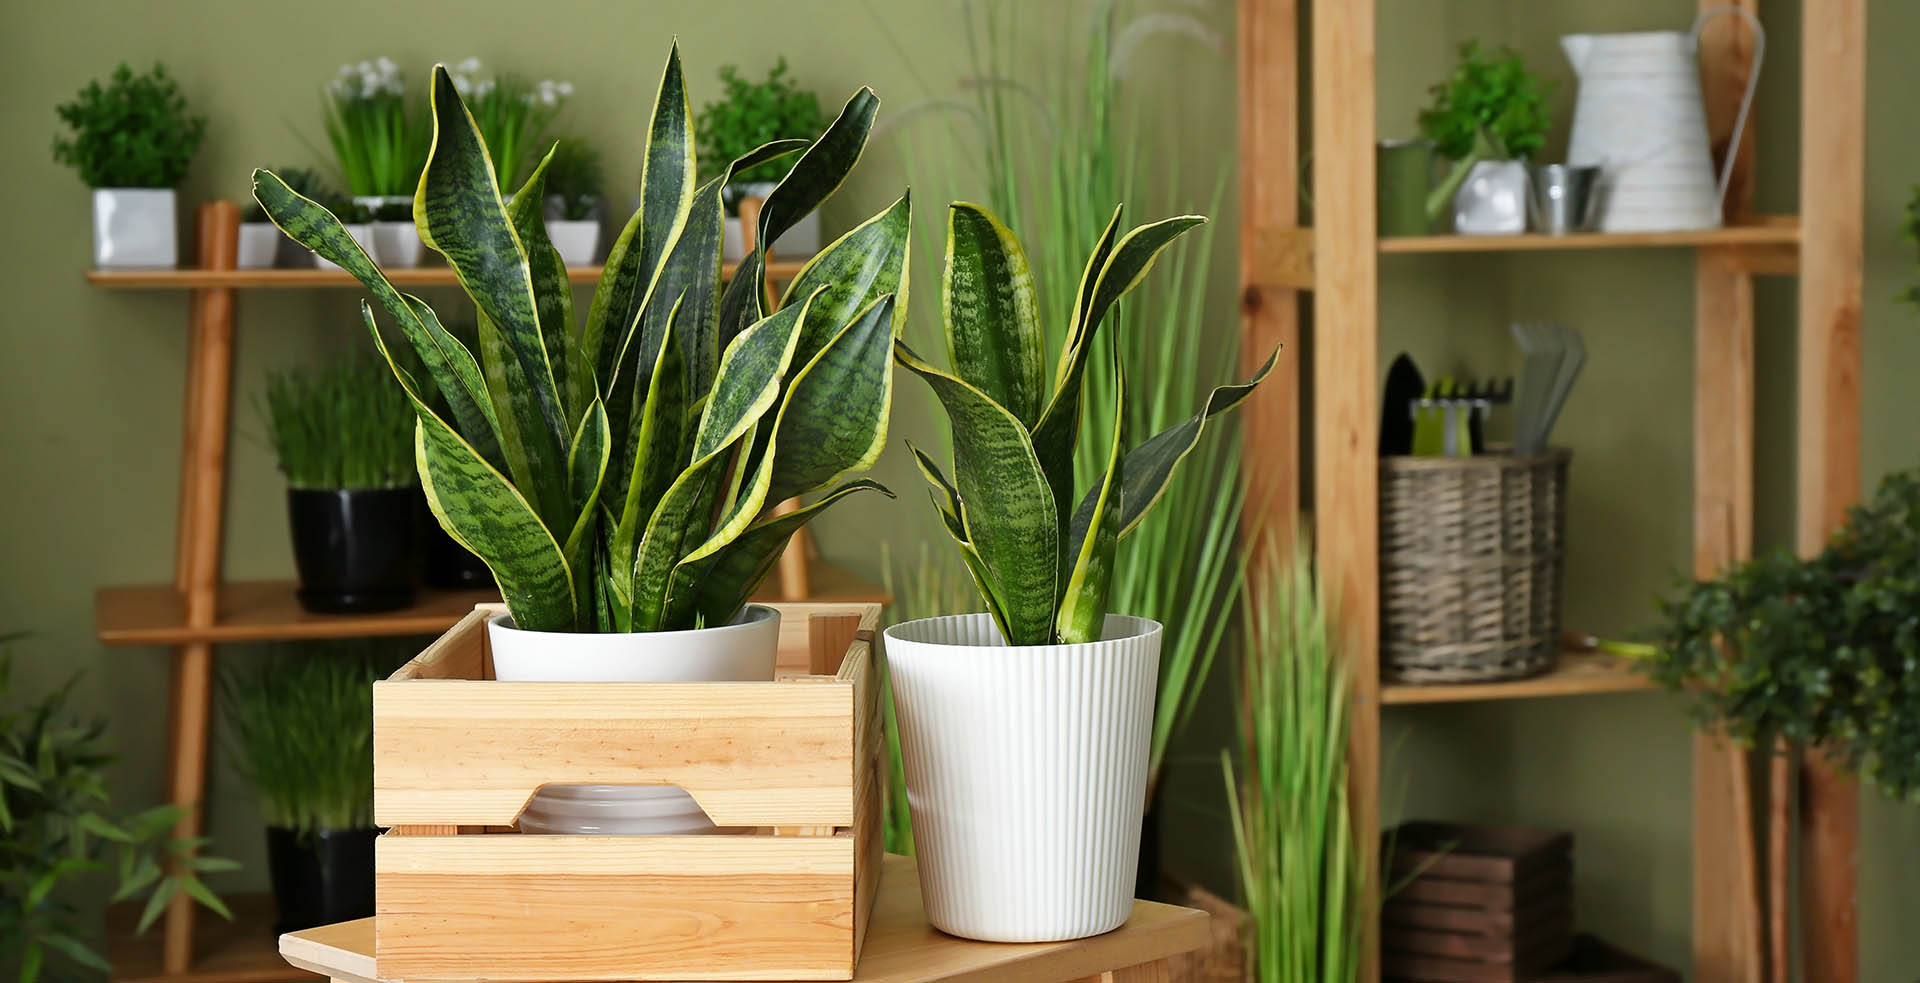 Two spider plants sit on a wooden table. Their long green leaves are surrounded by a yellow stripe and dark green speckles in the center. Behind them are wooden shelves filled with smaller, leafier houseplants.